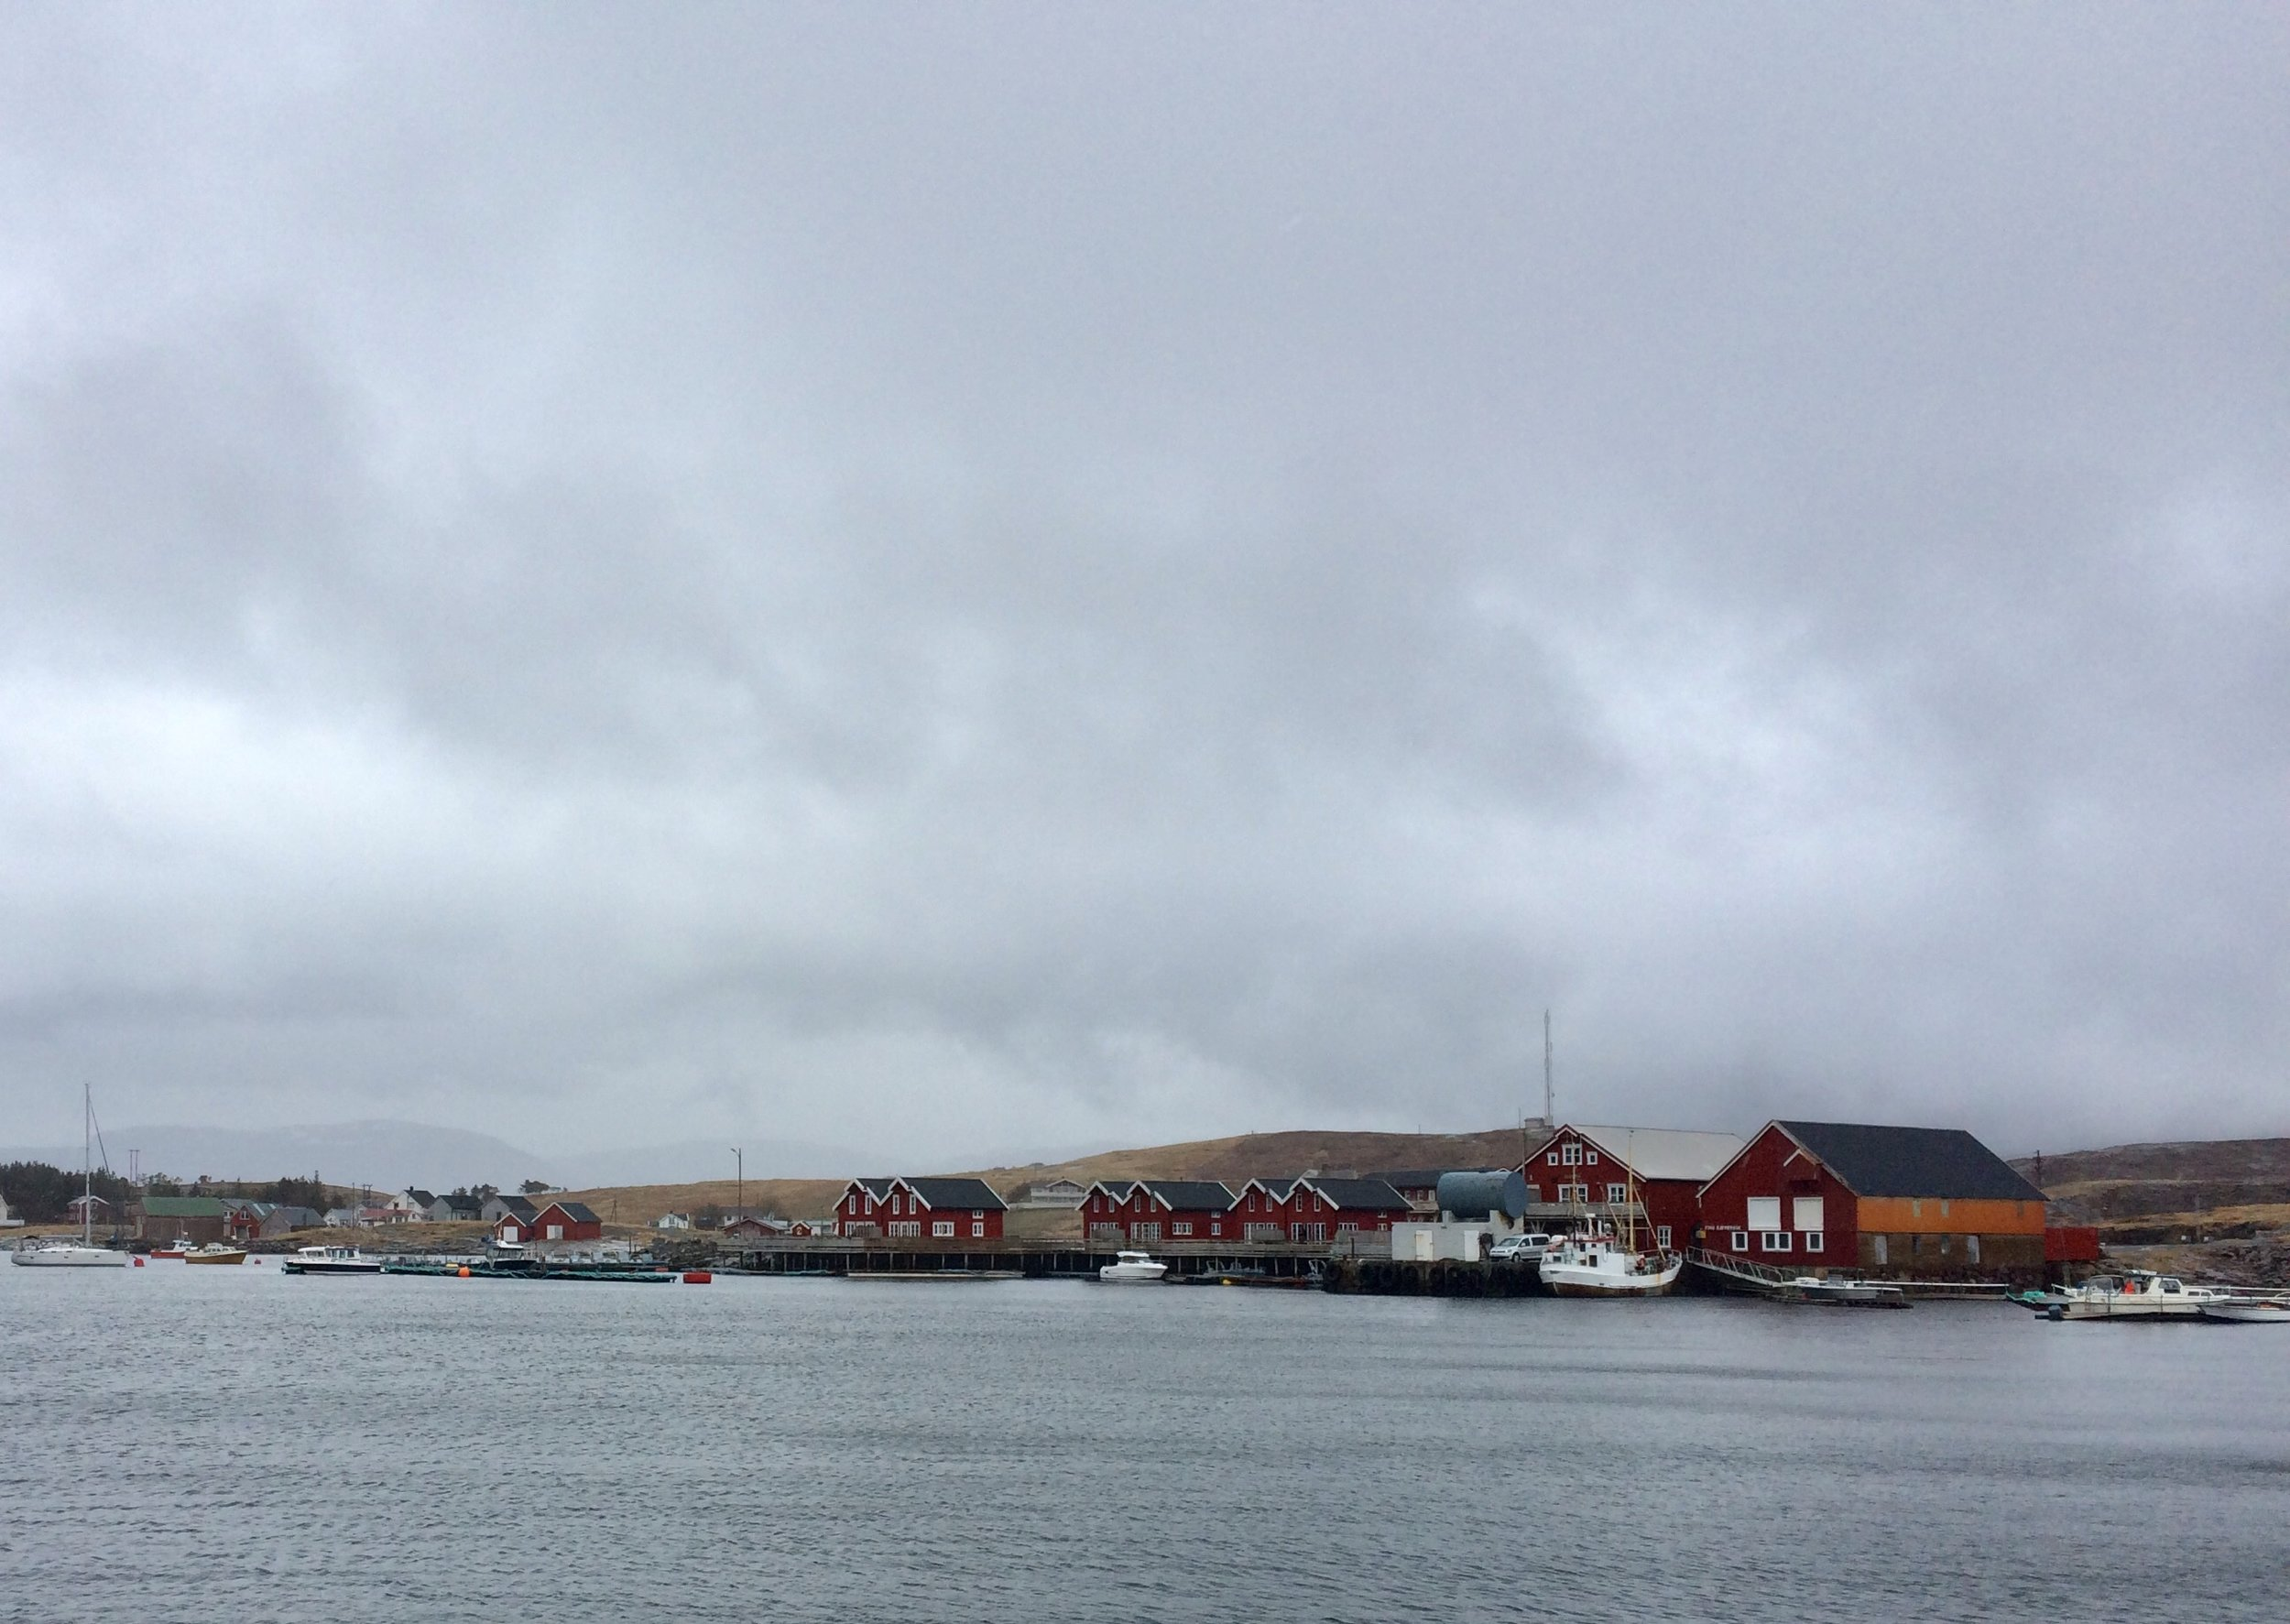 Seter, from the ferry. I stayed at one of these fishing cabins on the pier for the night!